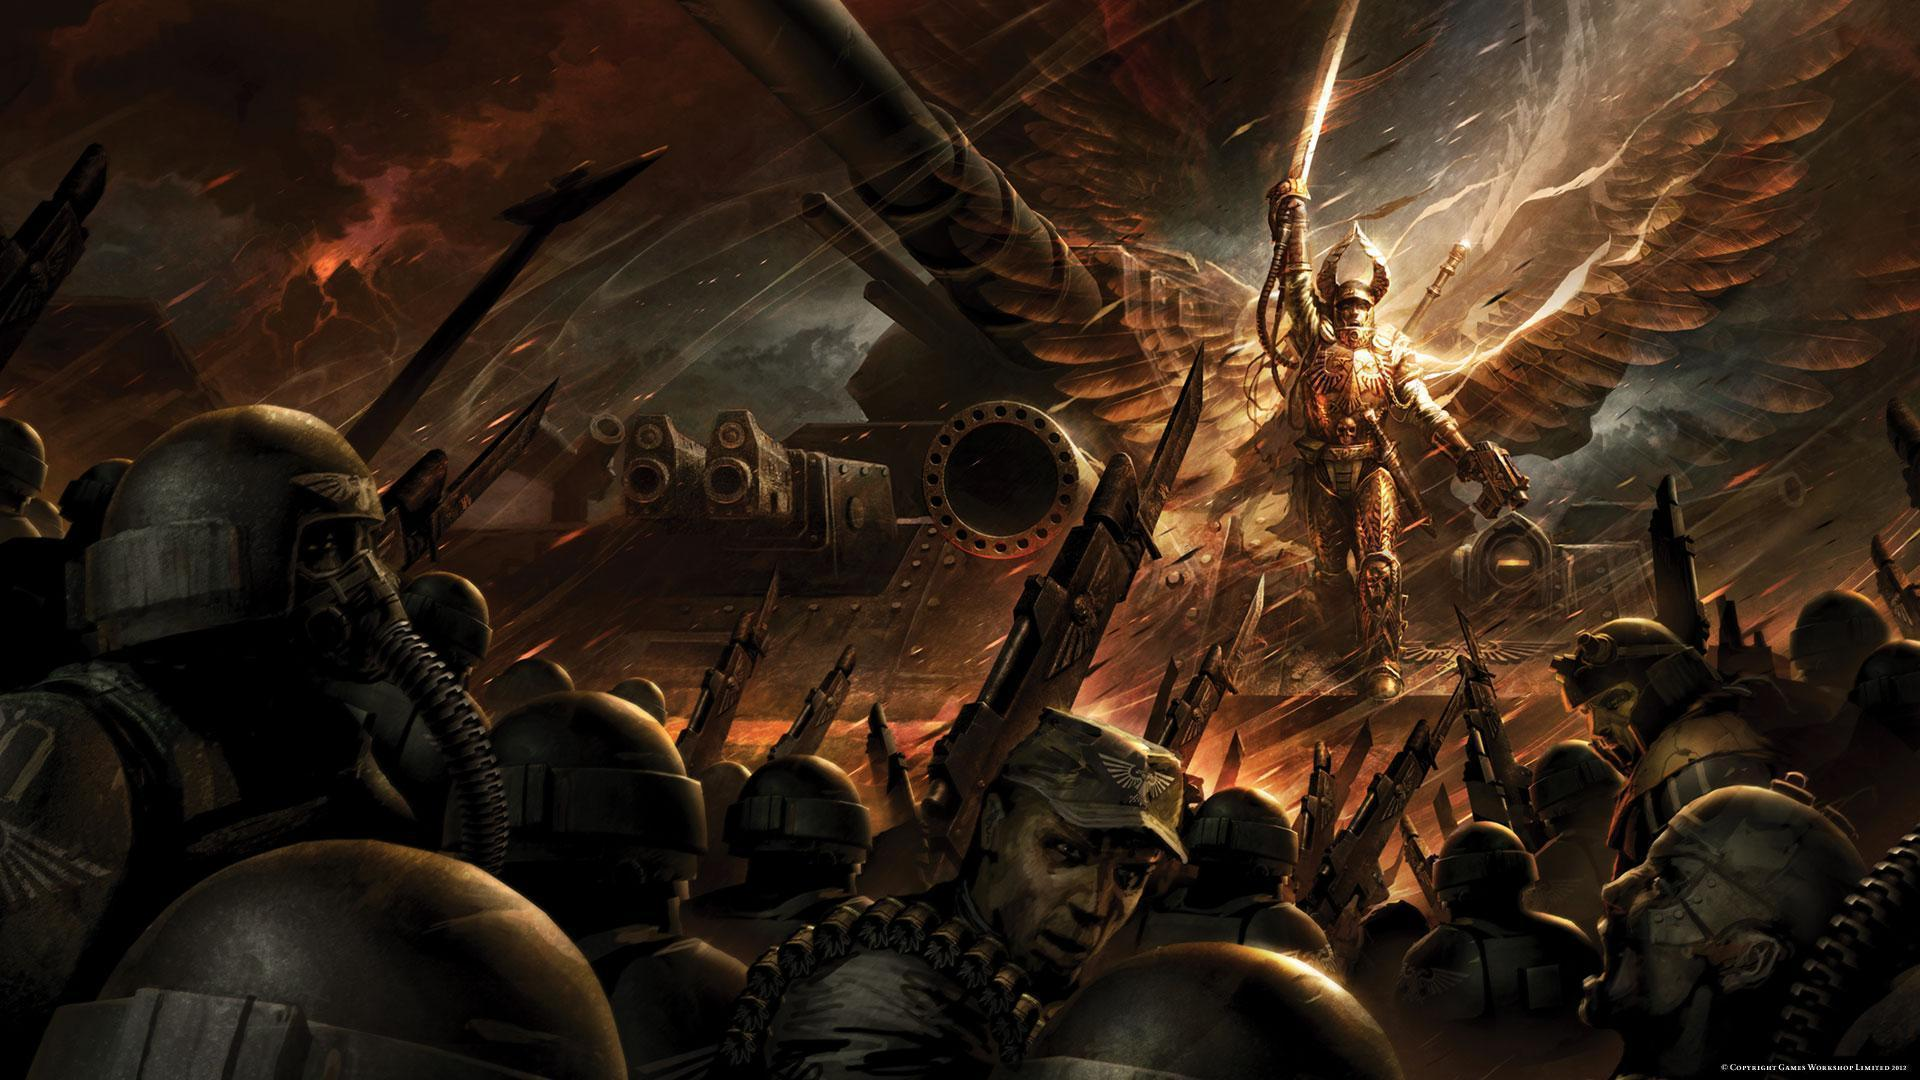 Warhammer 40k wallpapers wallpaper cave - Battlefield screensaver ...